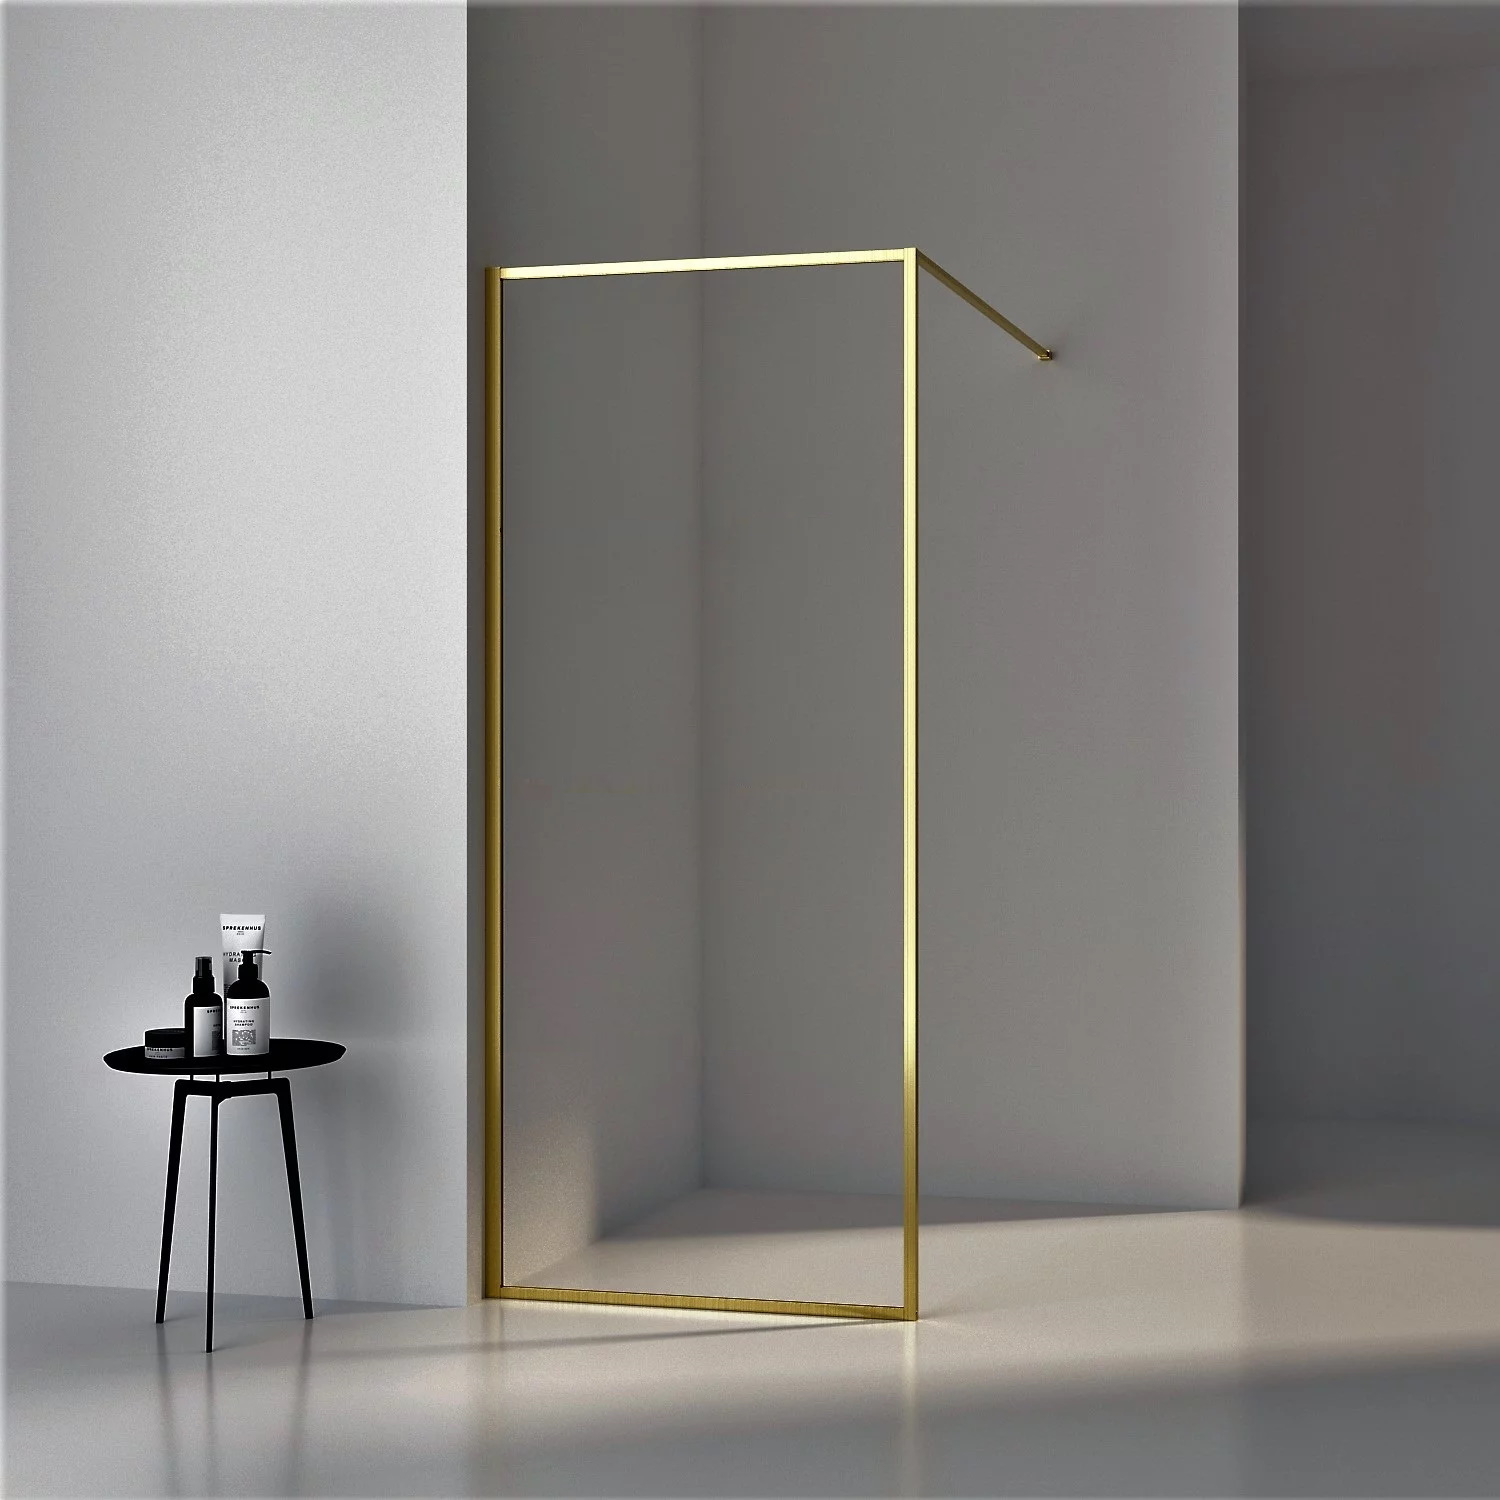 Inloopdouche Boss & Wessing Recta 120x200 cm 8mm NANO Glas Geborsteld Messing Goud